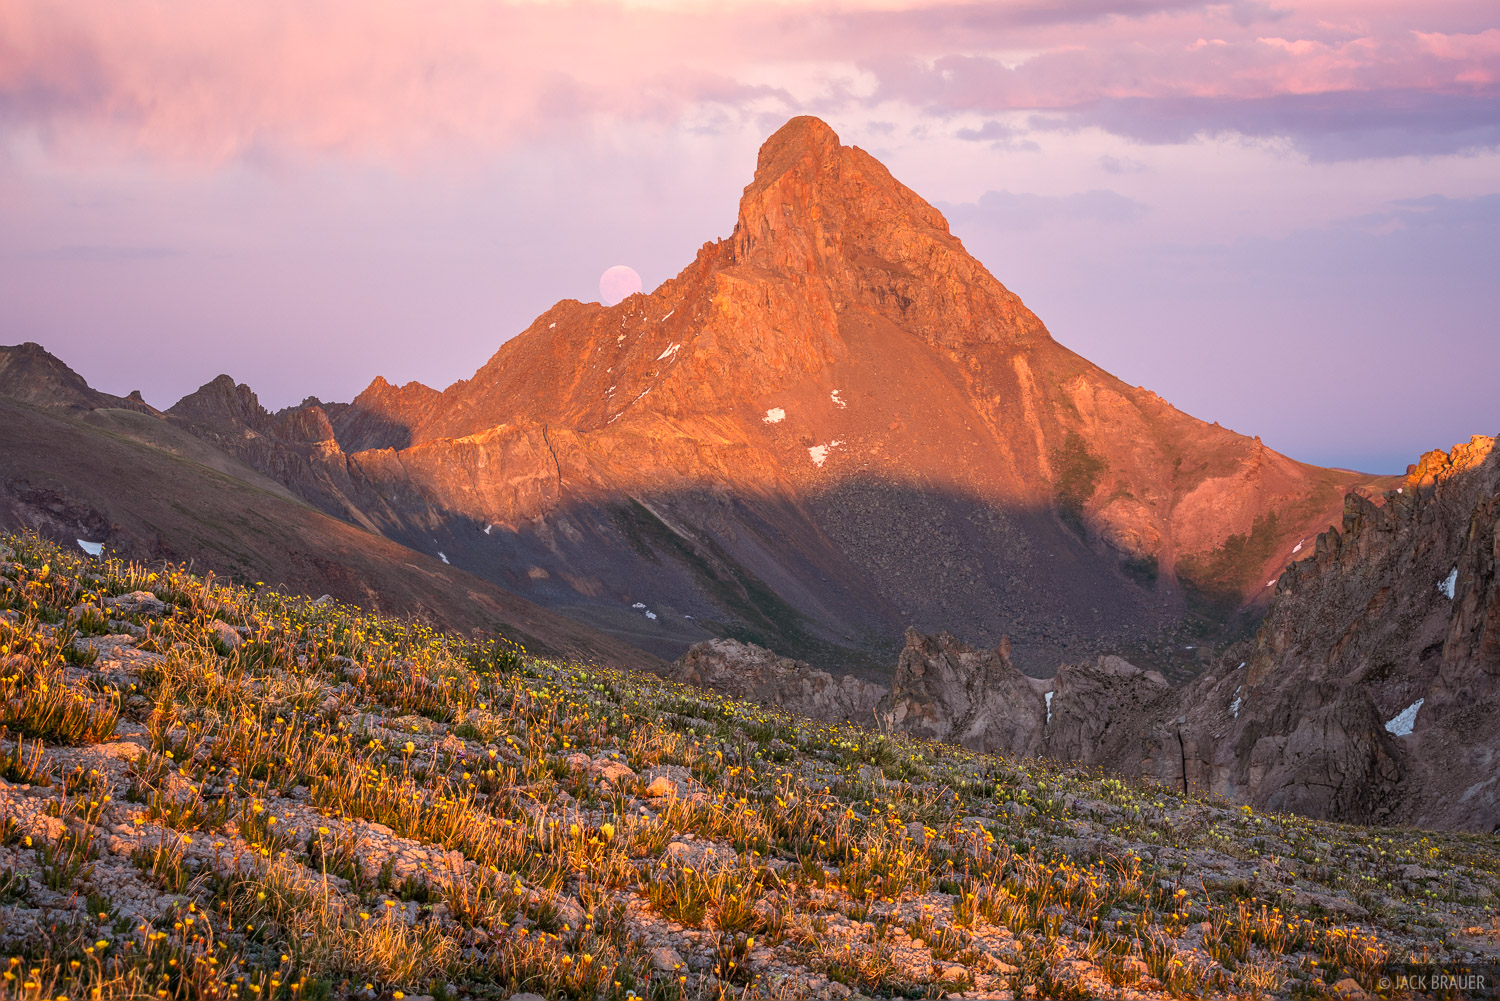 Colorado, San Juan Mountains, Uncompahgre Wilderness, Wetterhorn Peak, moon, 14er, photo